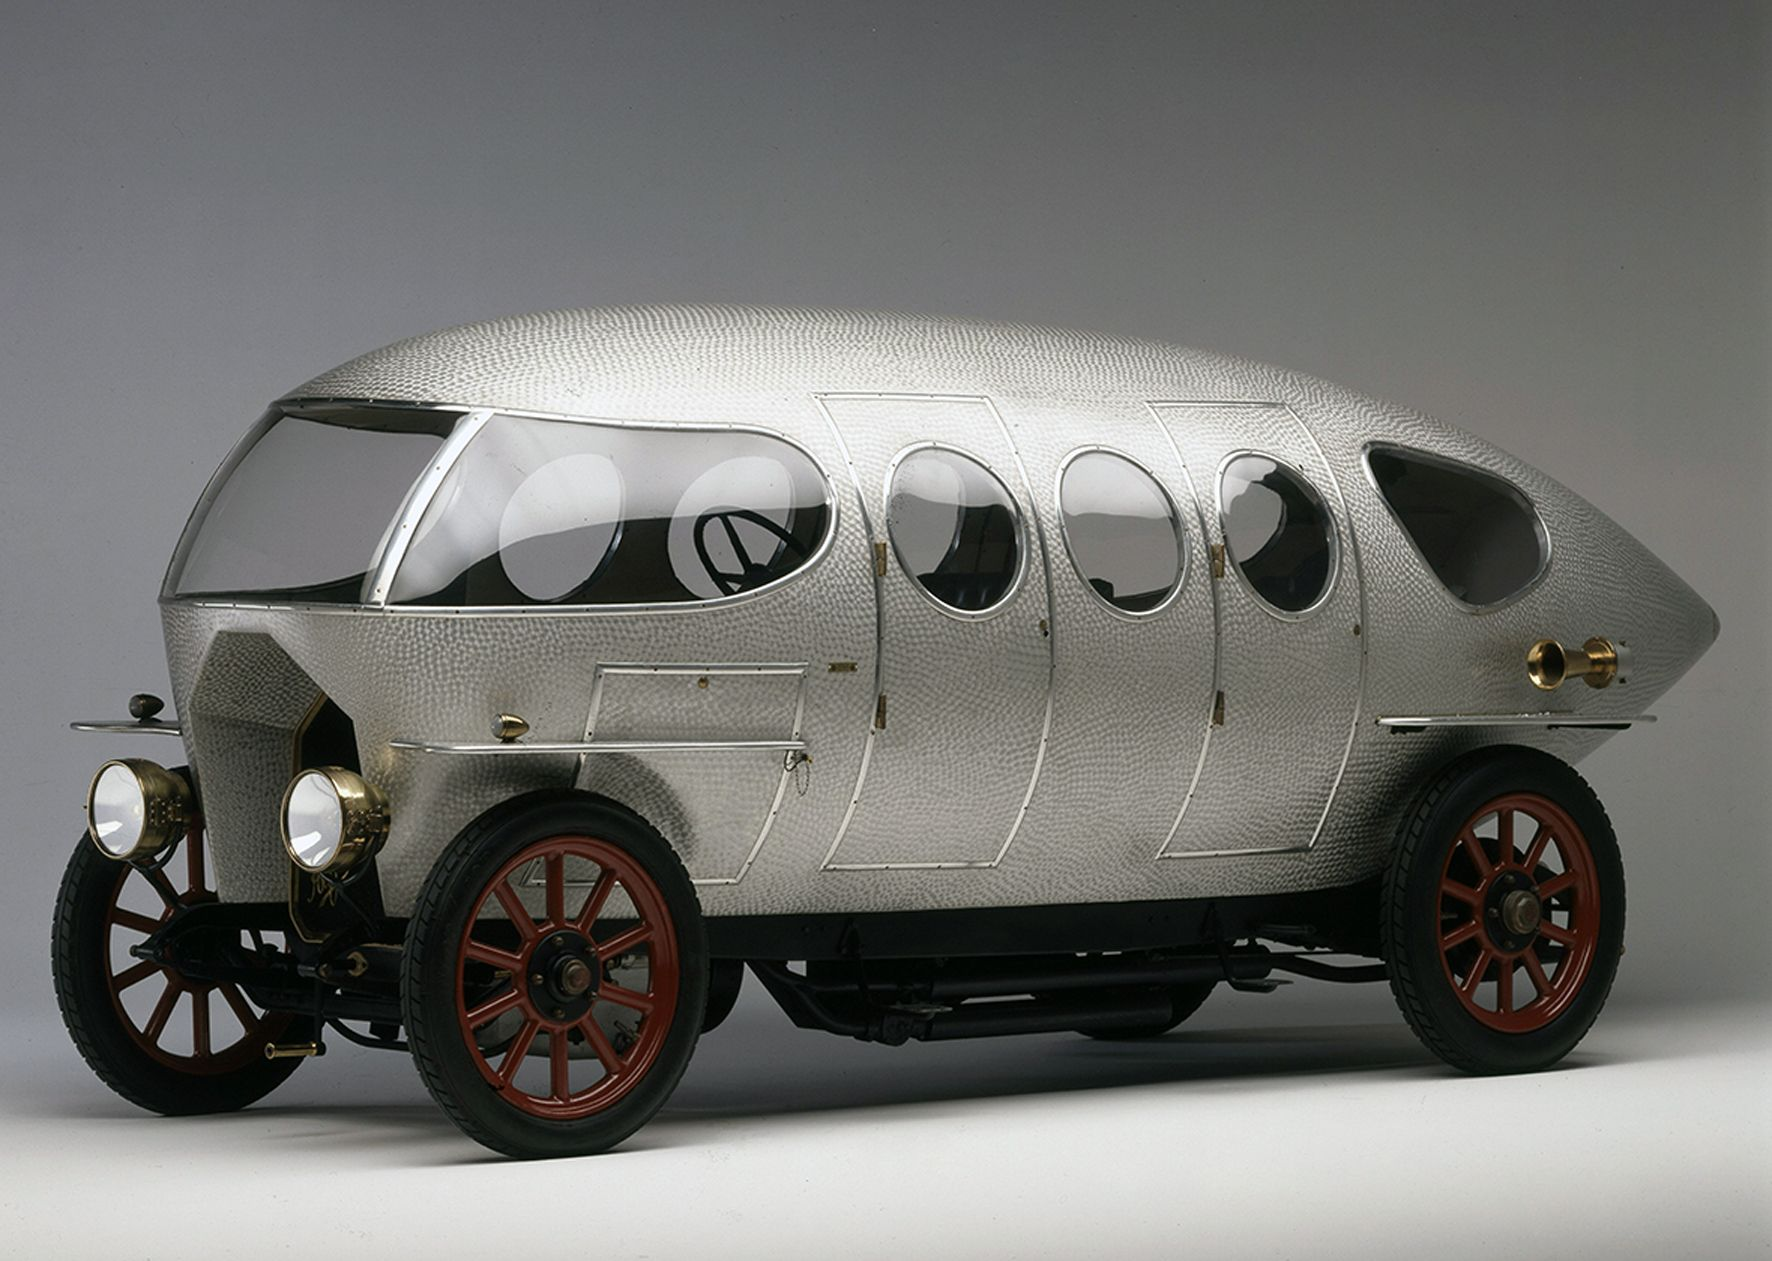 Expedition-Glueck-Alfa Romeo.jpg